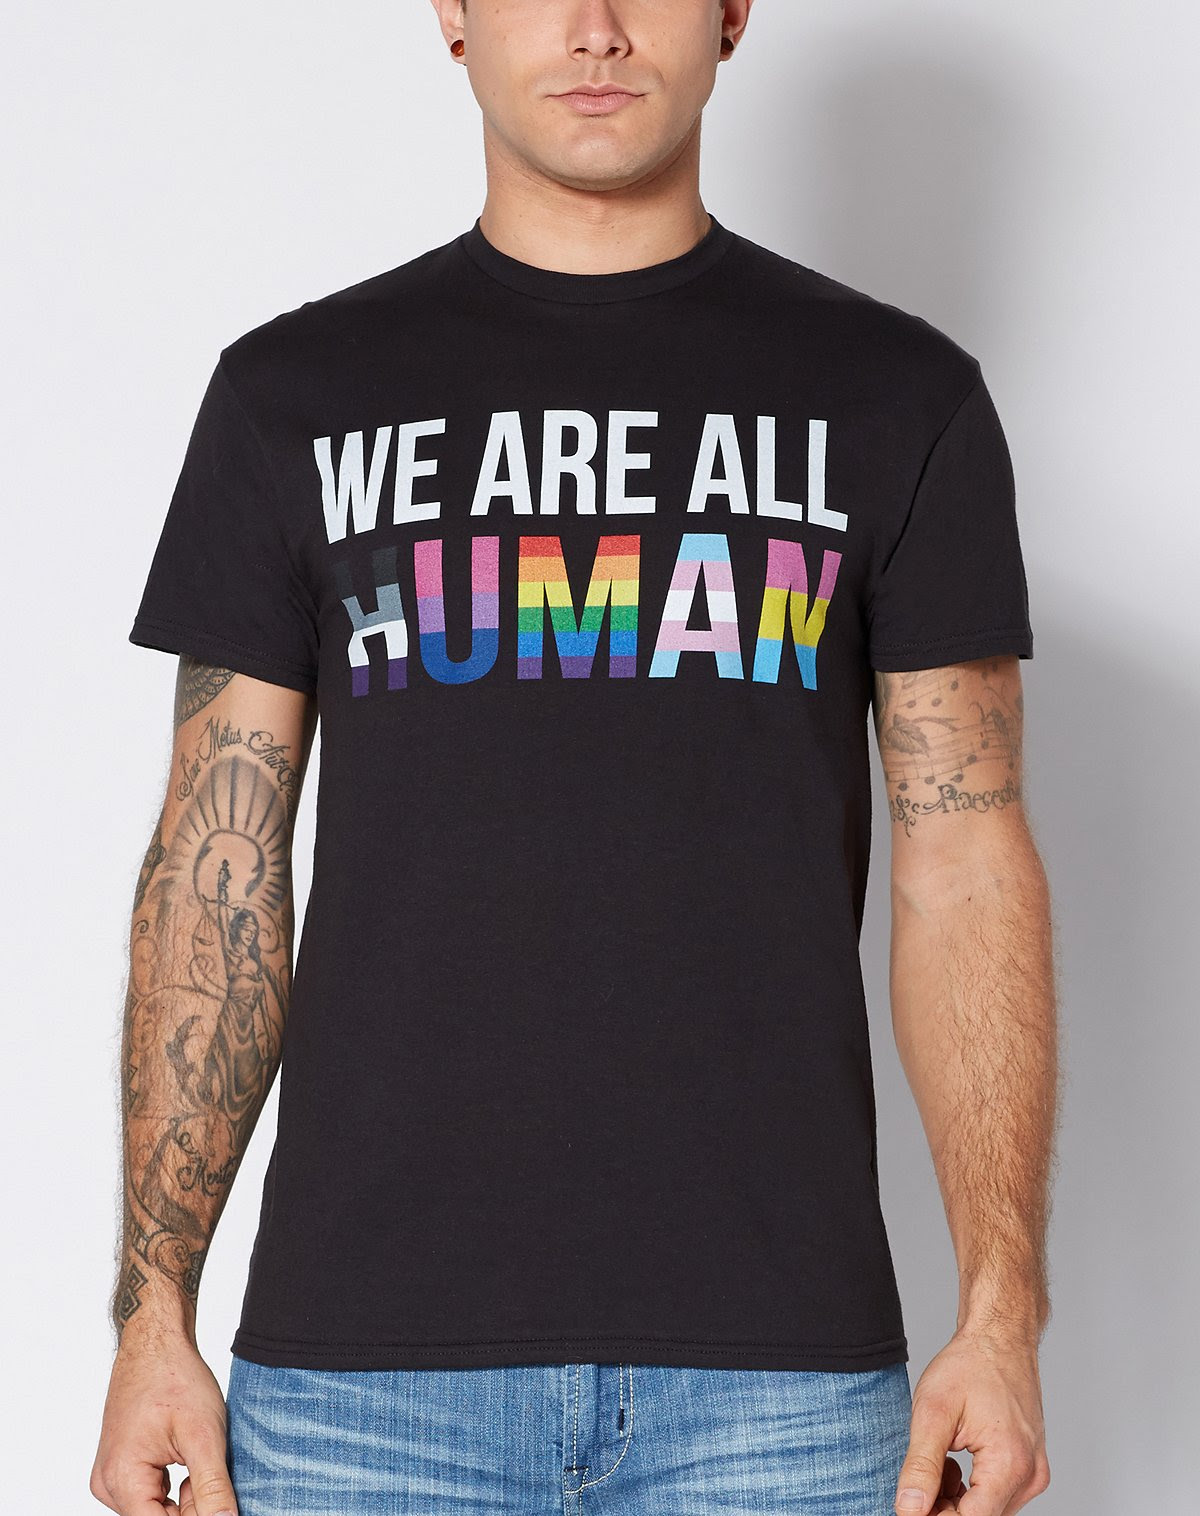 top pride shirts for 2020 everything you need to support